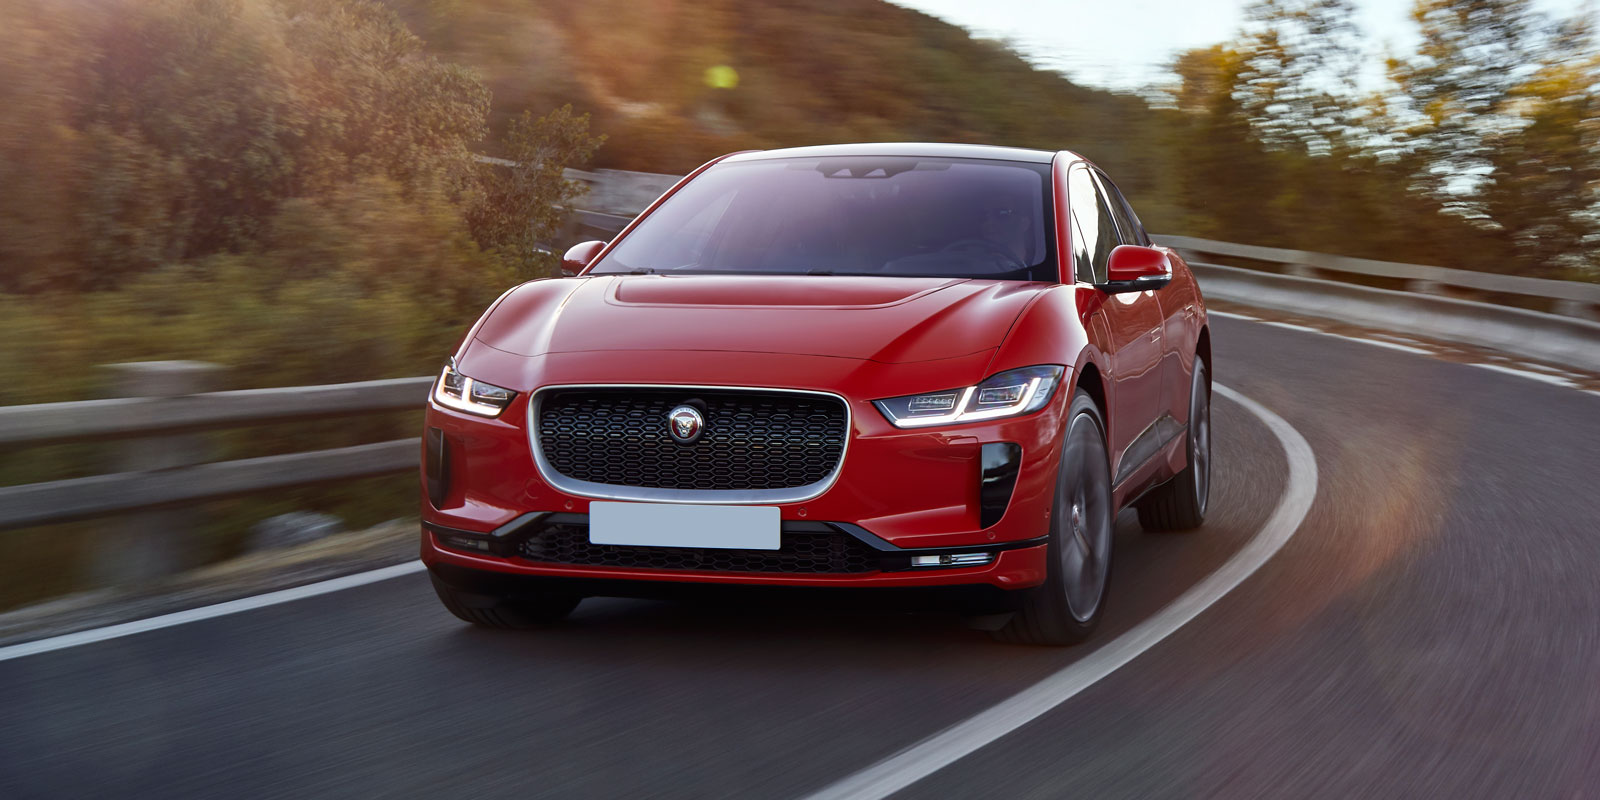 Jaguar Suv Price Uk 2018 Jaguar I Pace Electric Suv Price Specs And Release